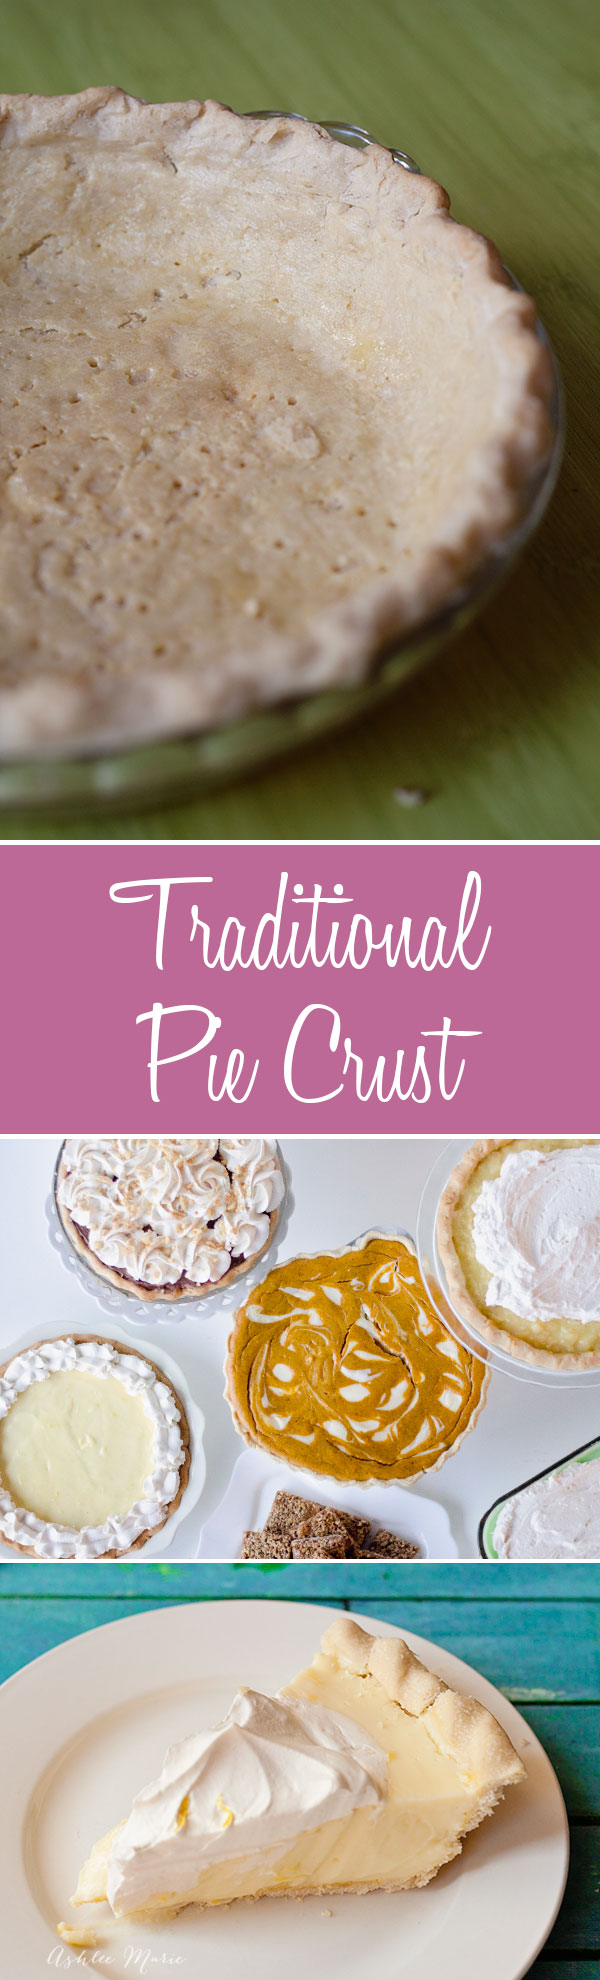 the perfect traditional pie crust recipe, its easy to make, flakey and works well with almost any pie